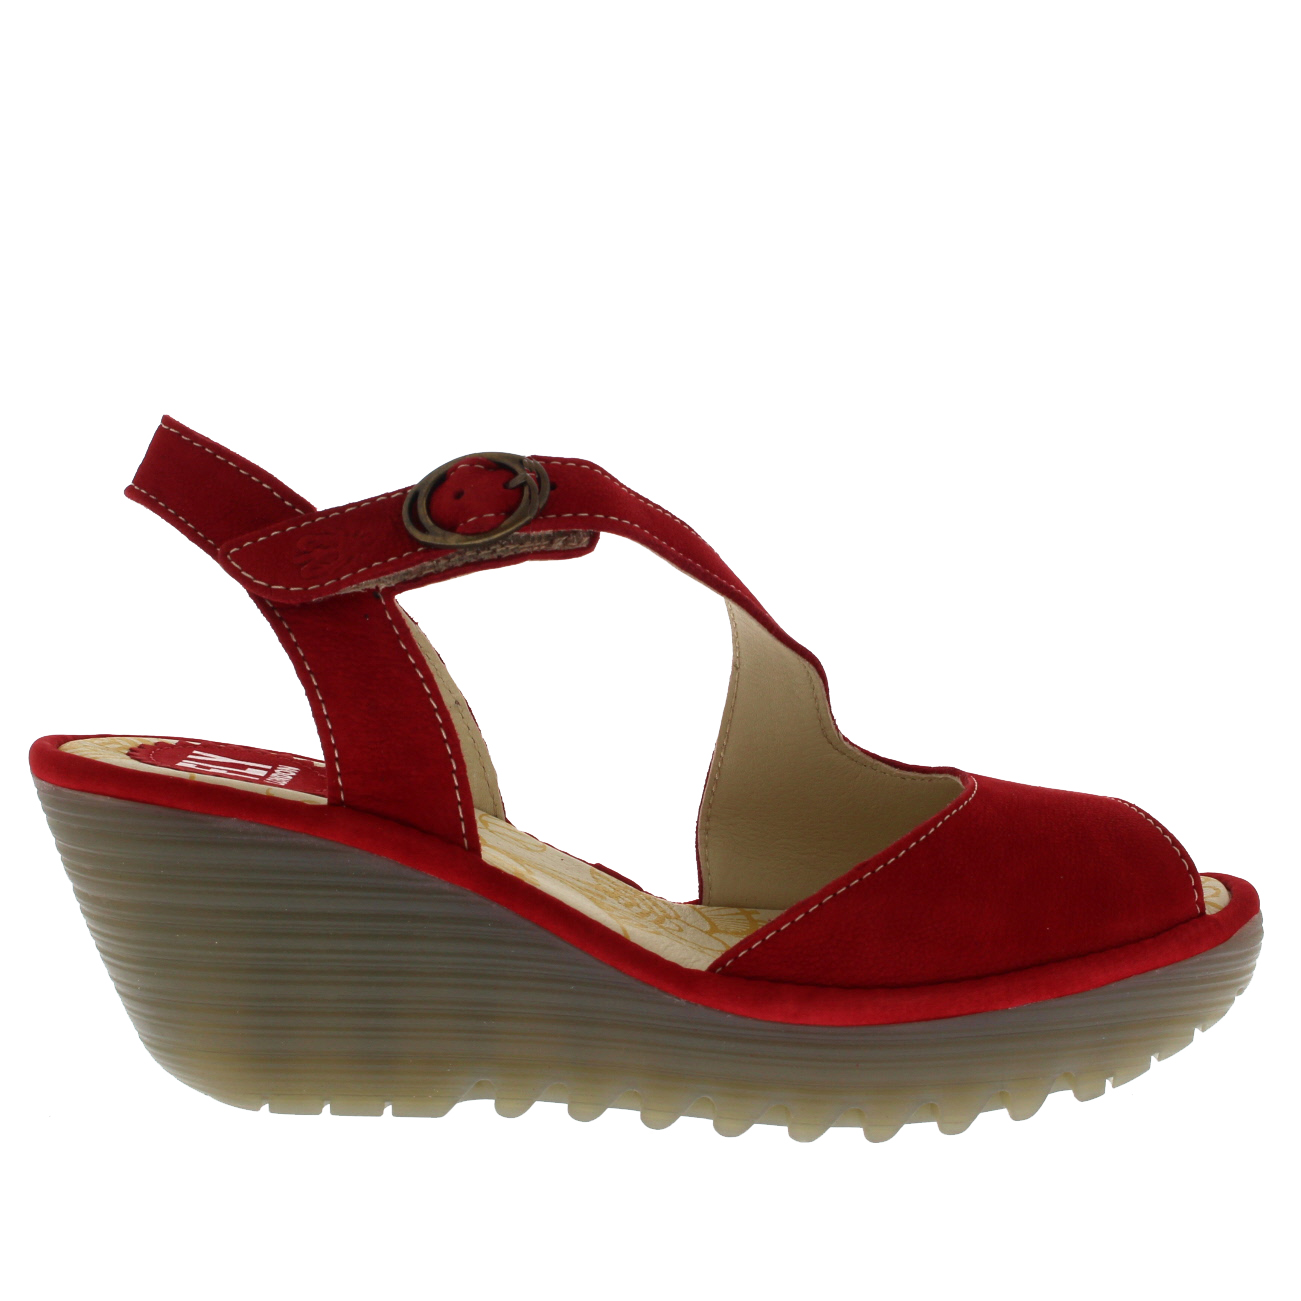 Womens-Fly-London-Yamp-Peep-Toe-Summer-Cut-Out-Buckle-Wedge-Heel-Sandals-US-5-12 thumbnail 17